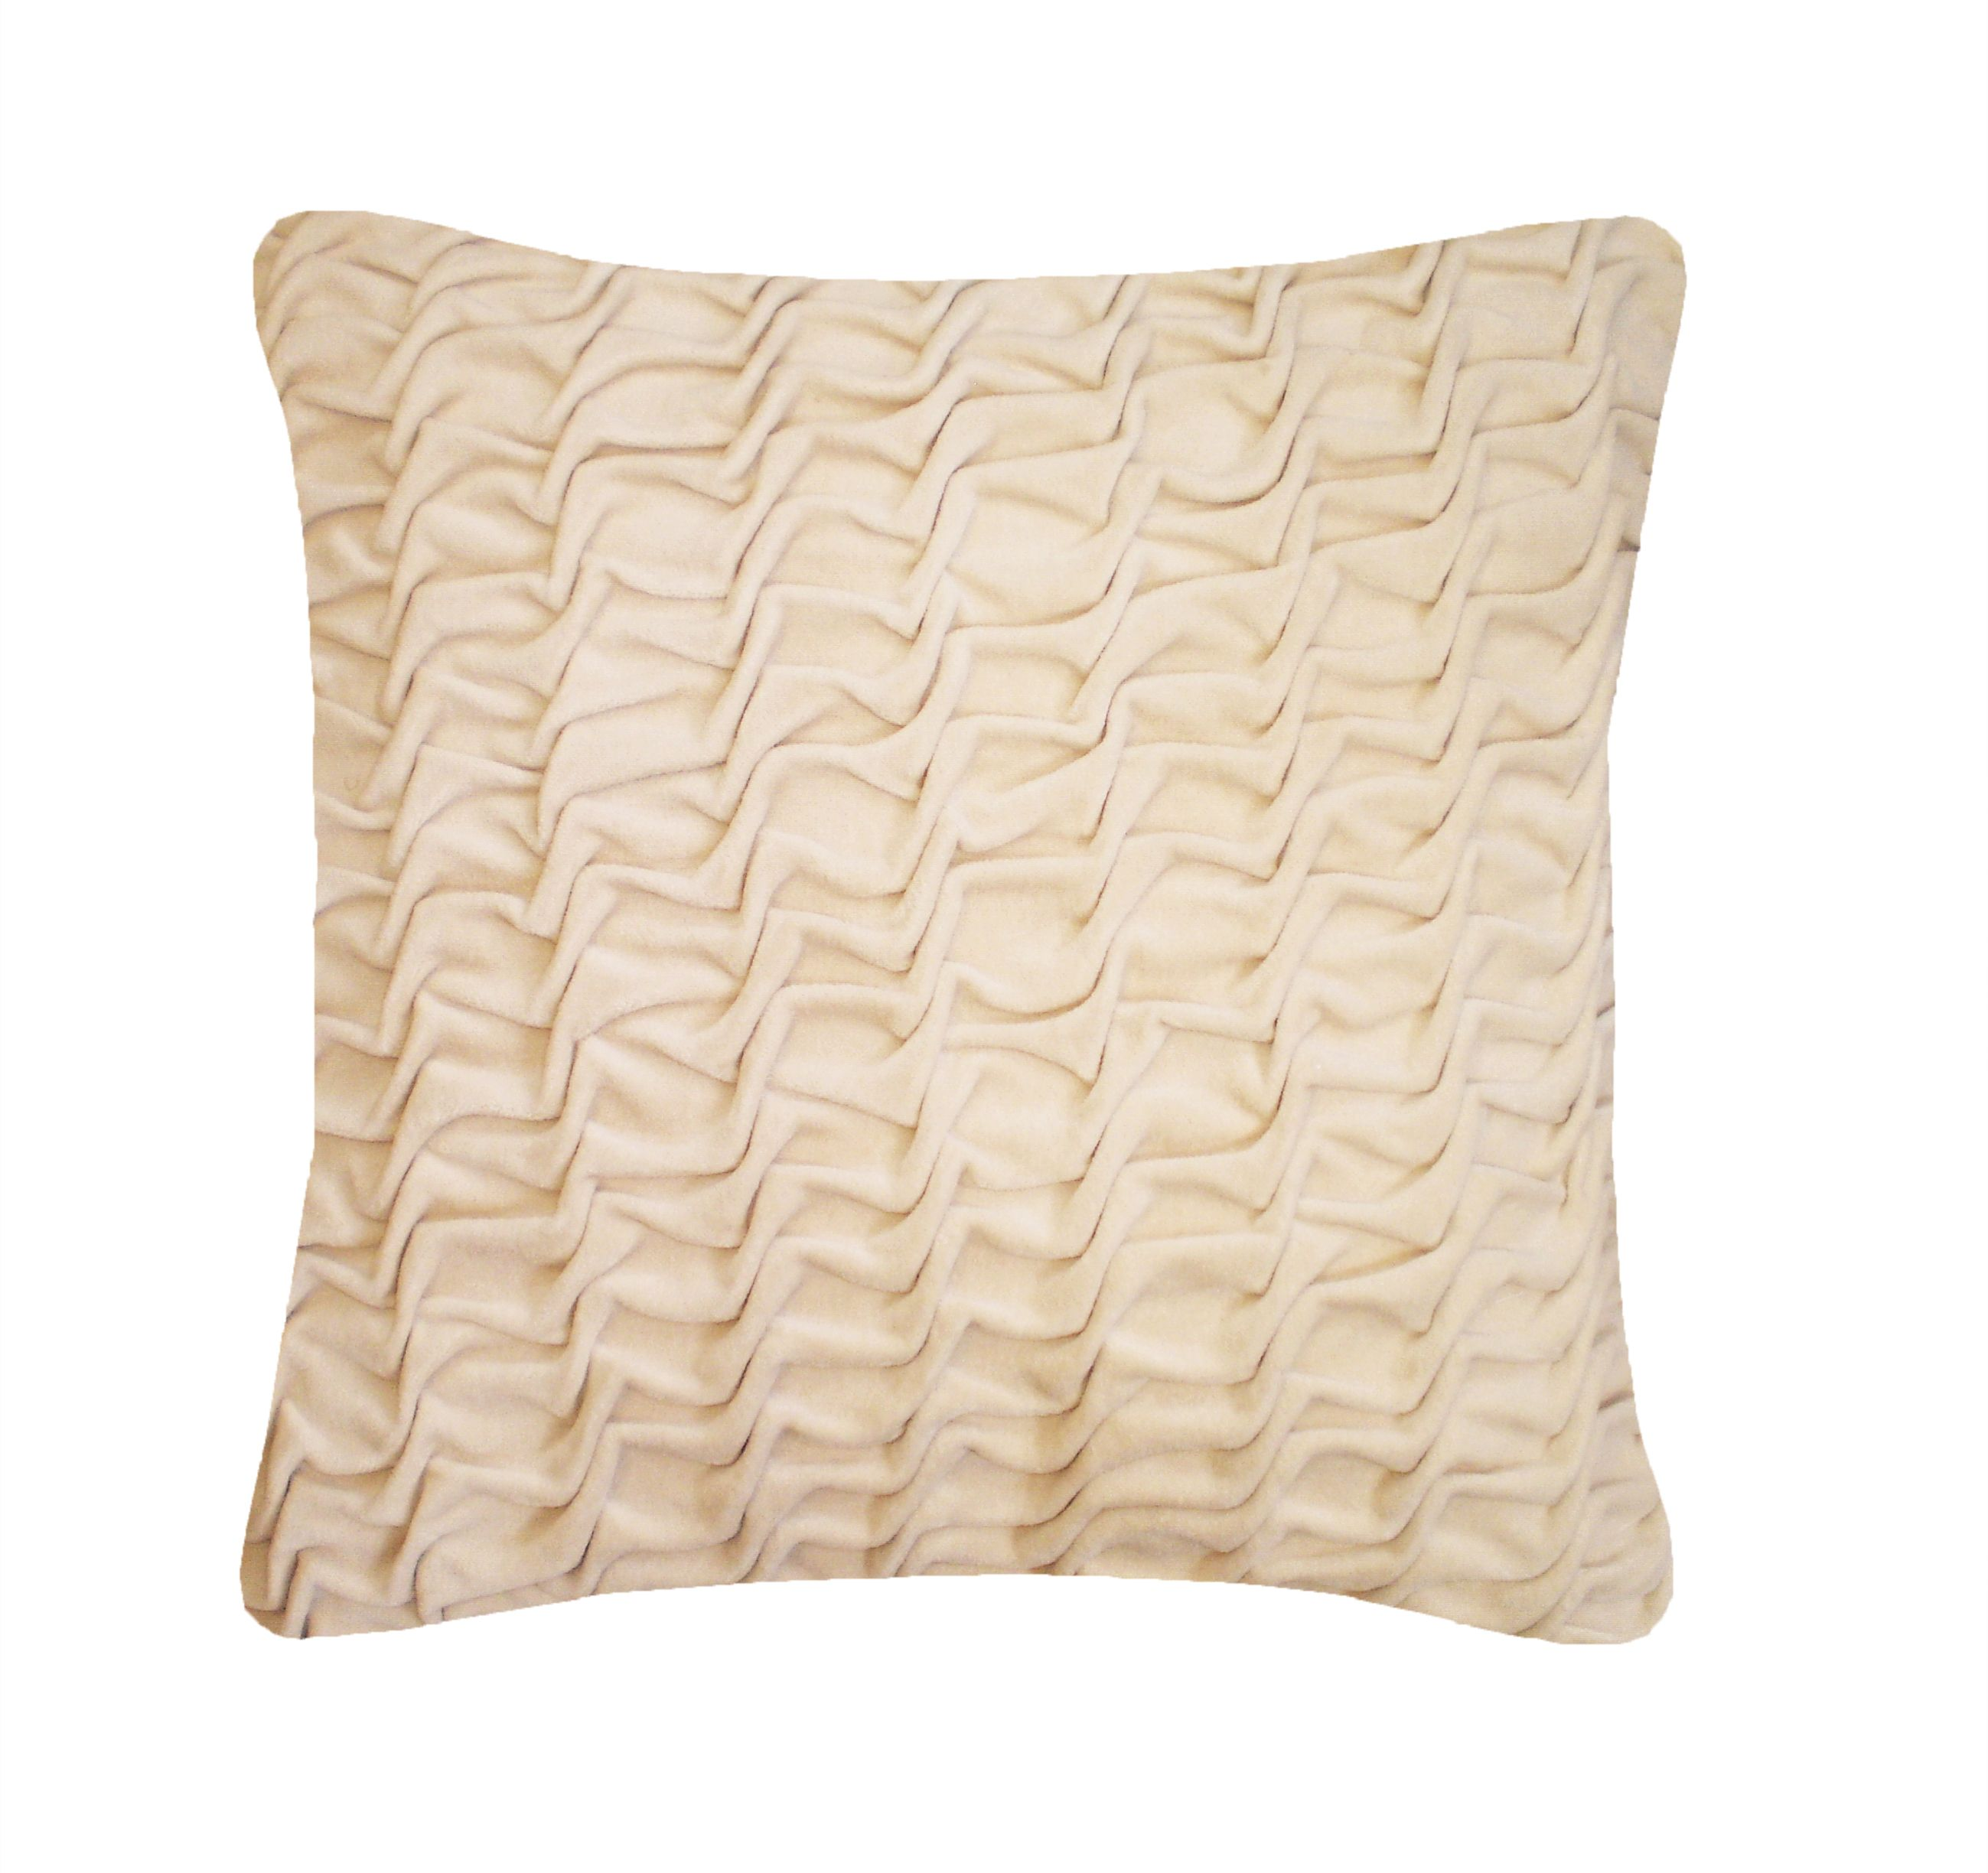 Image of Nitin Goyal Hand Smocked Swirl Velvet cushion in Ivory 40x40